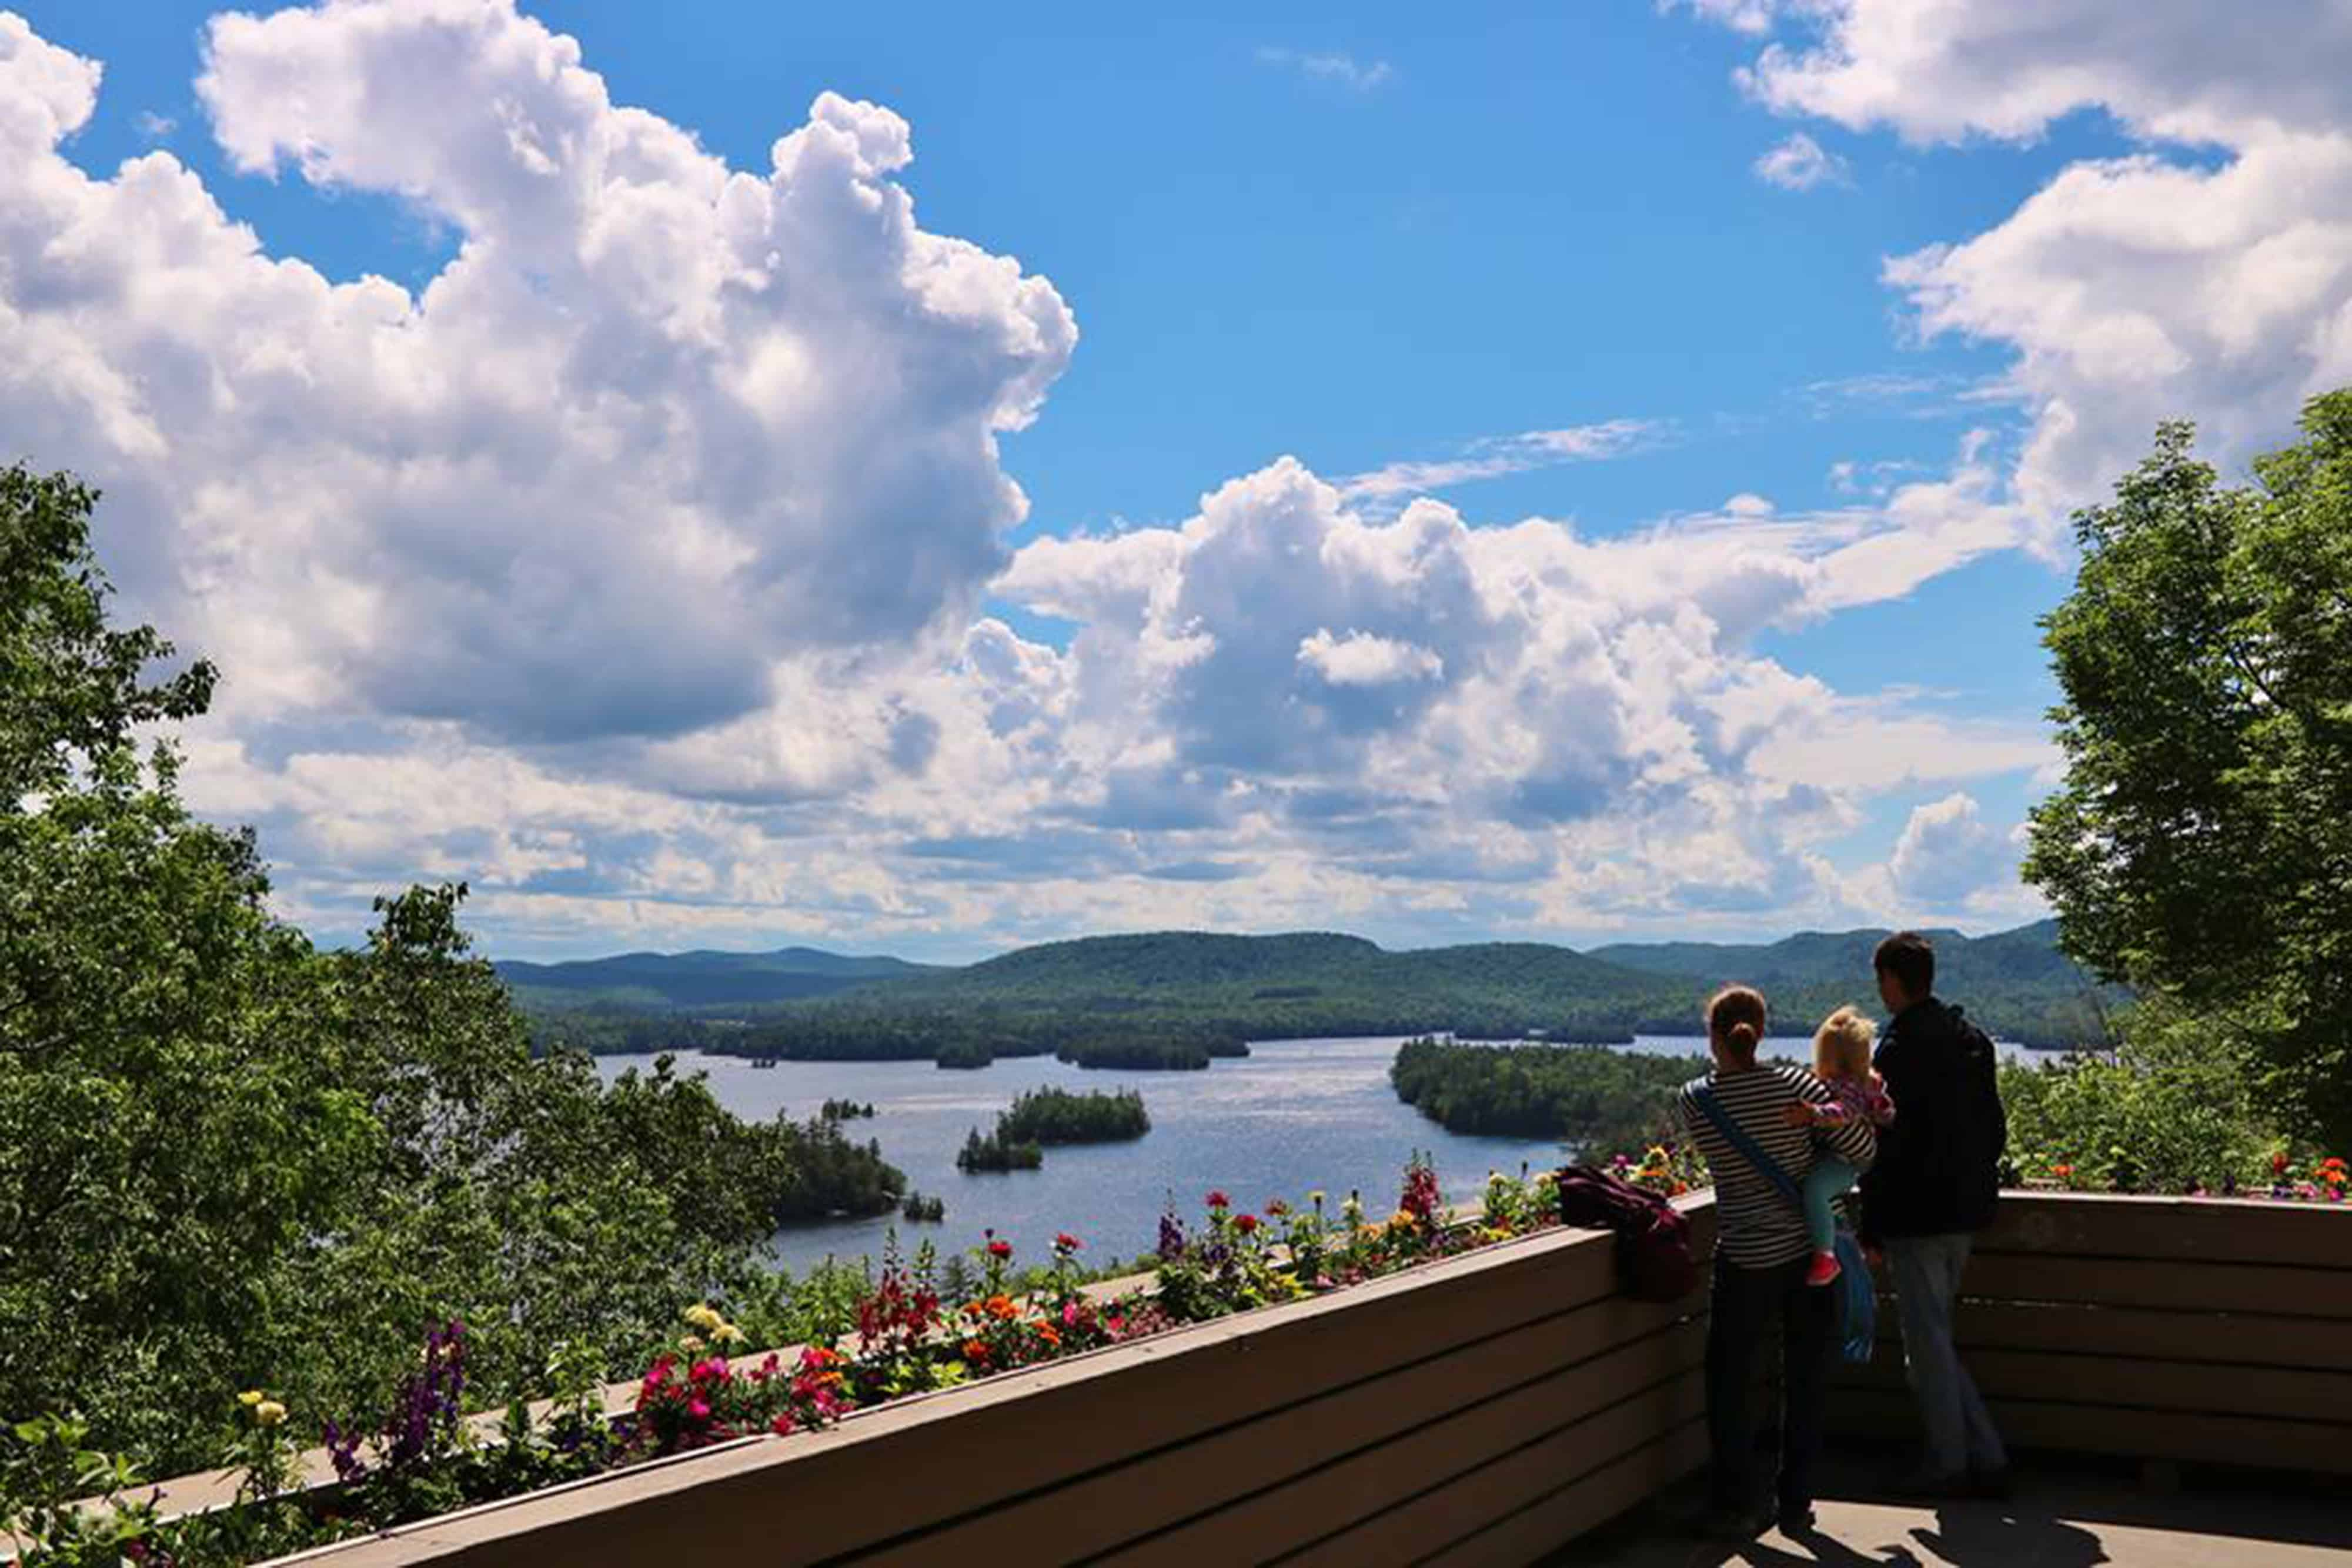 Day Trip Destination: Adirondack Experience